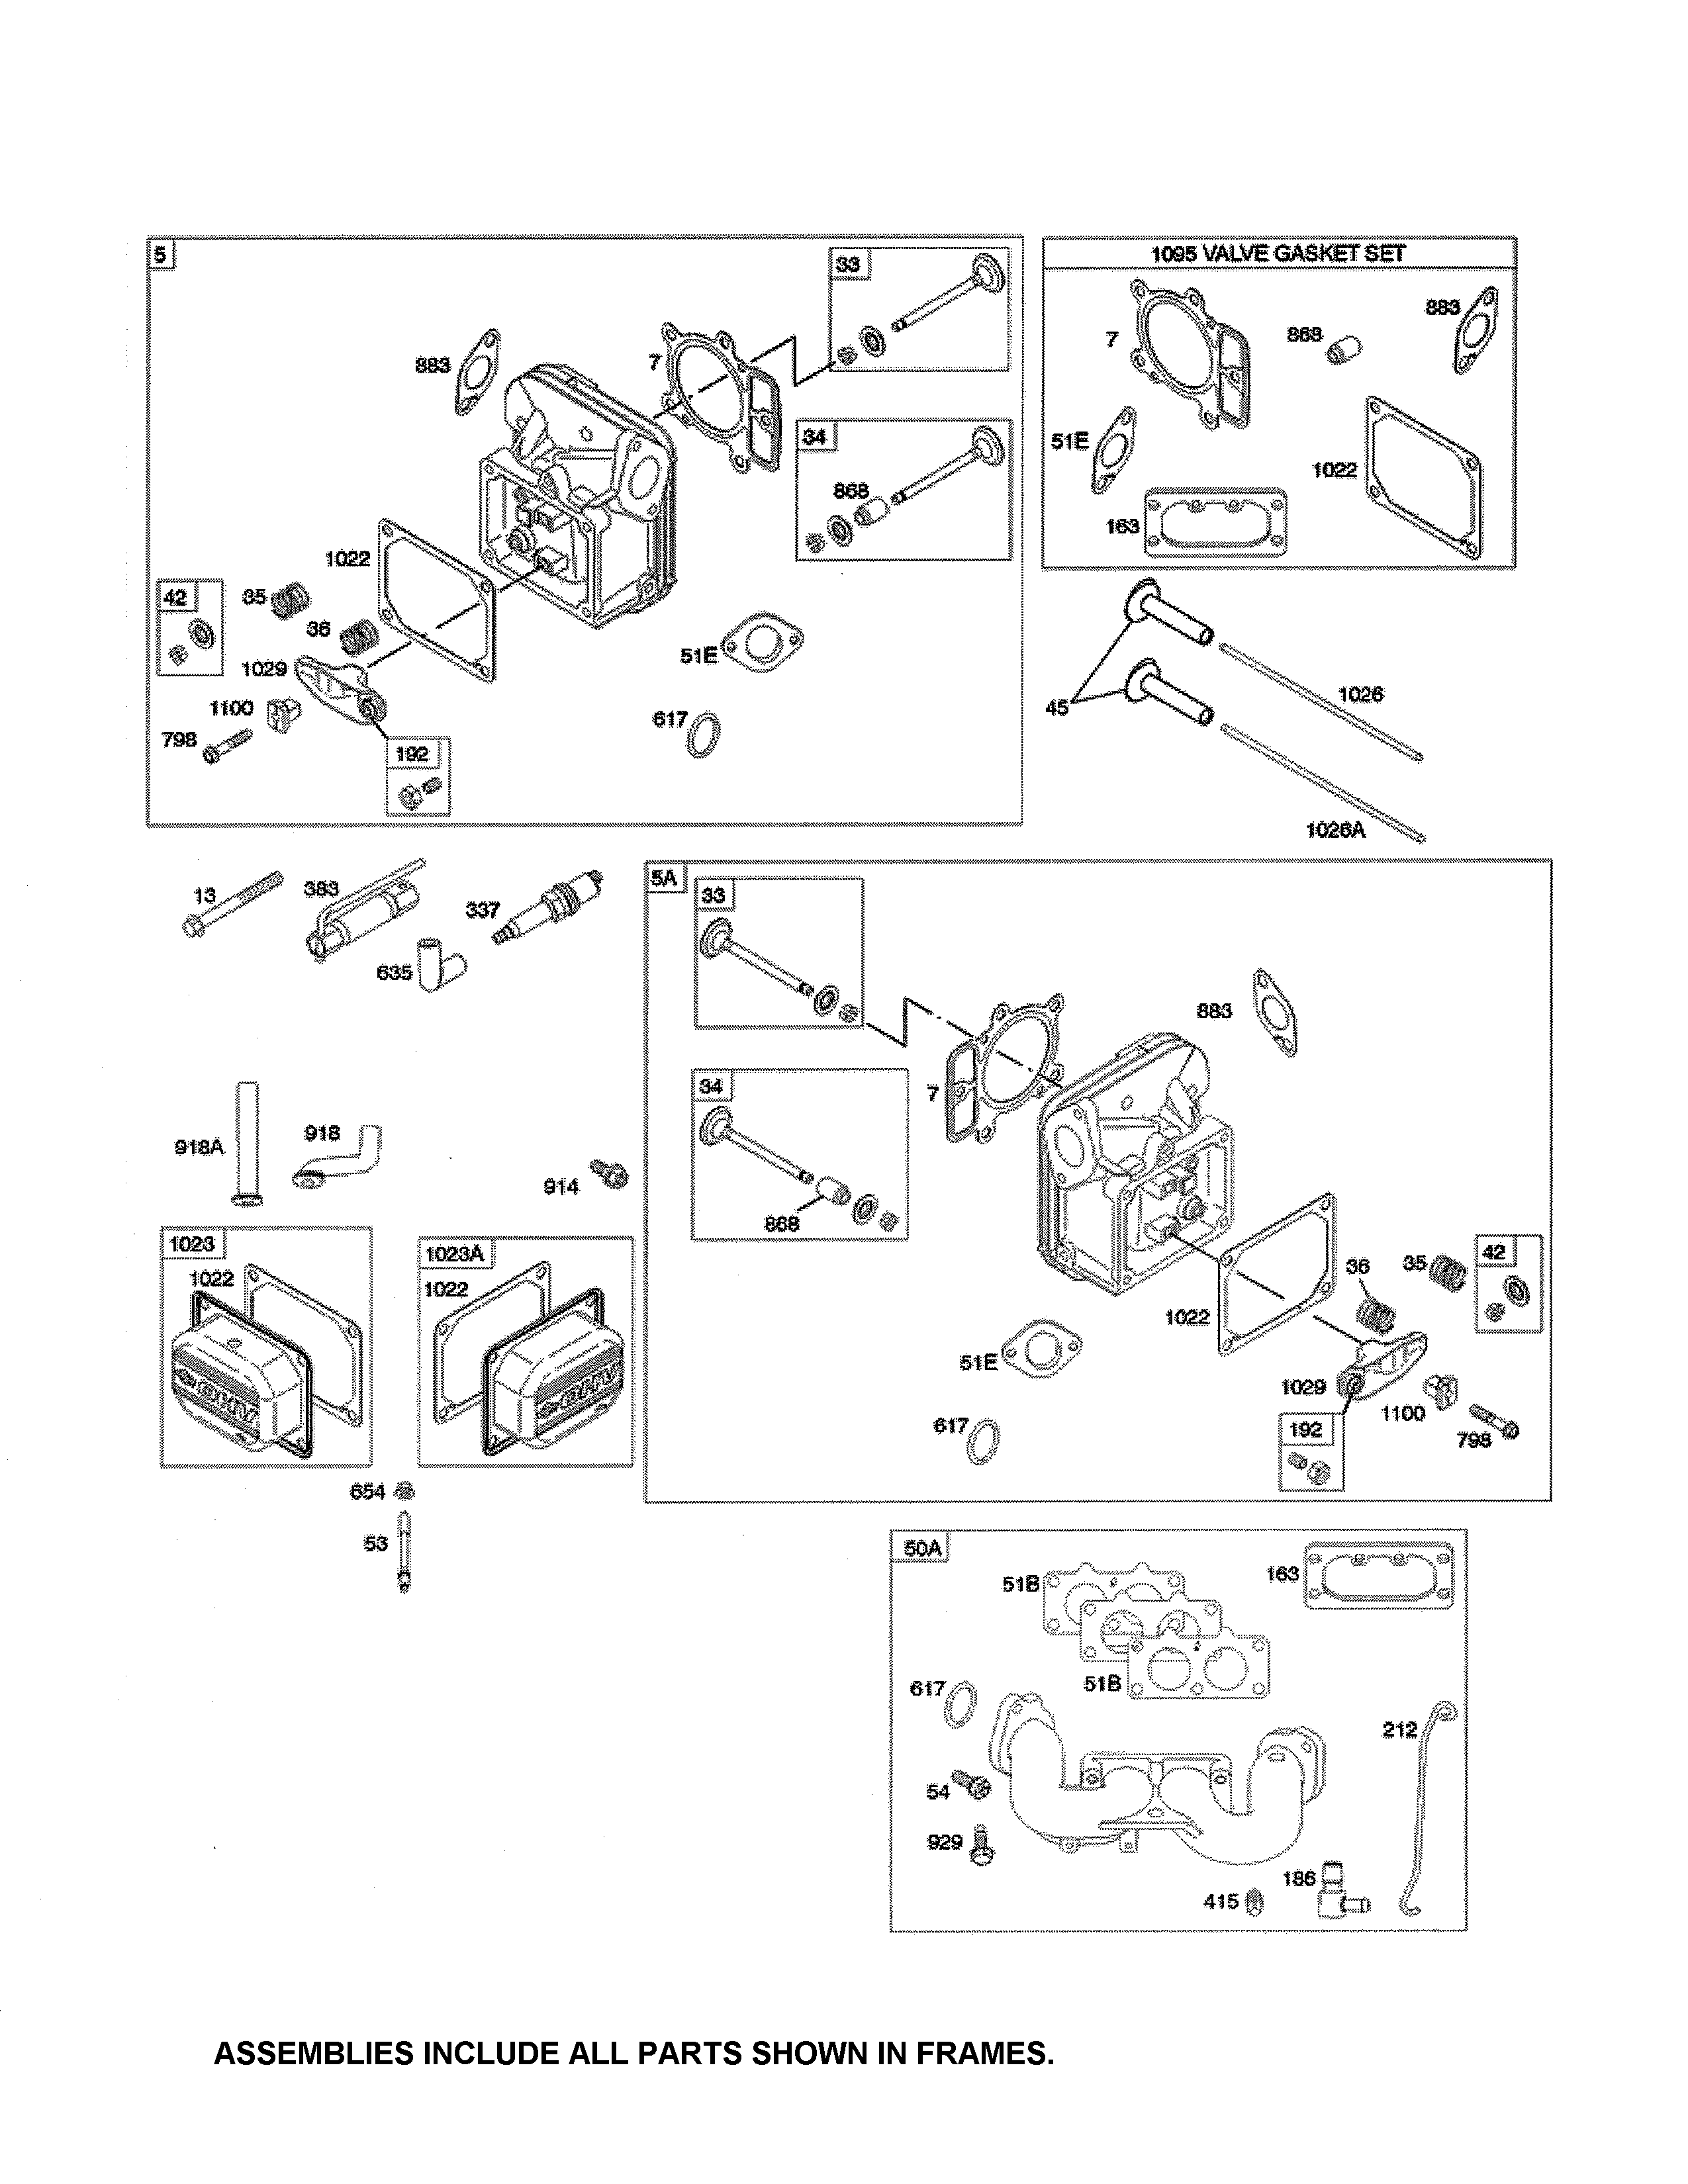 Wiring Diagram For A Briggs And Stratton Engine 445577